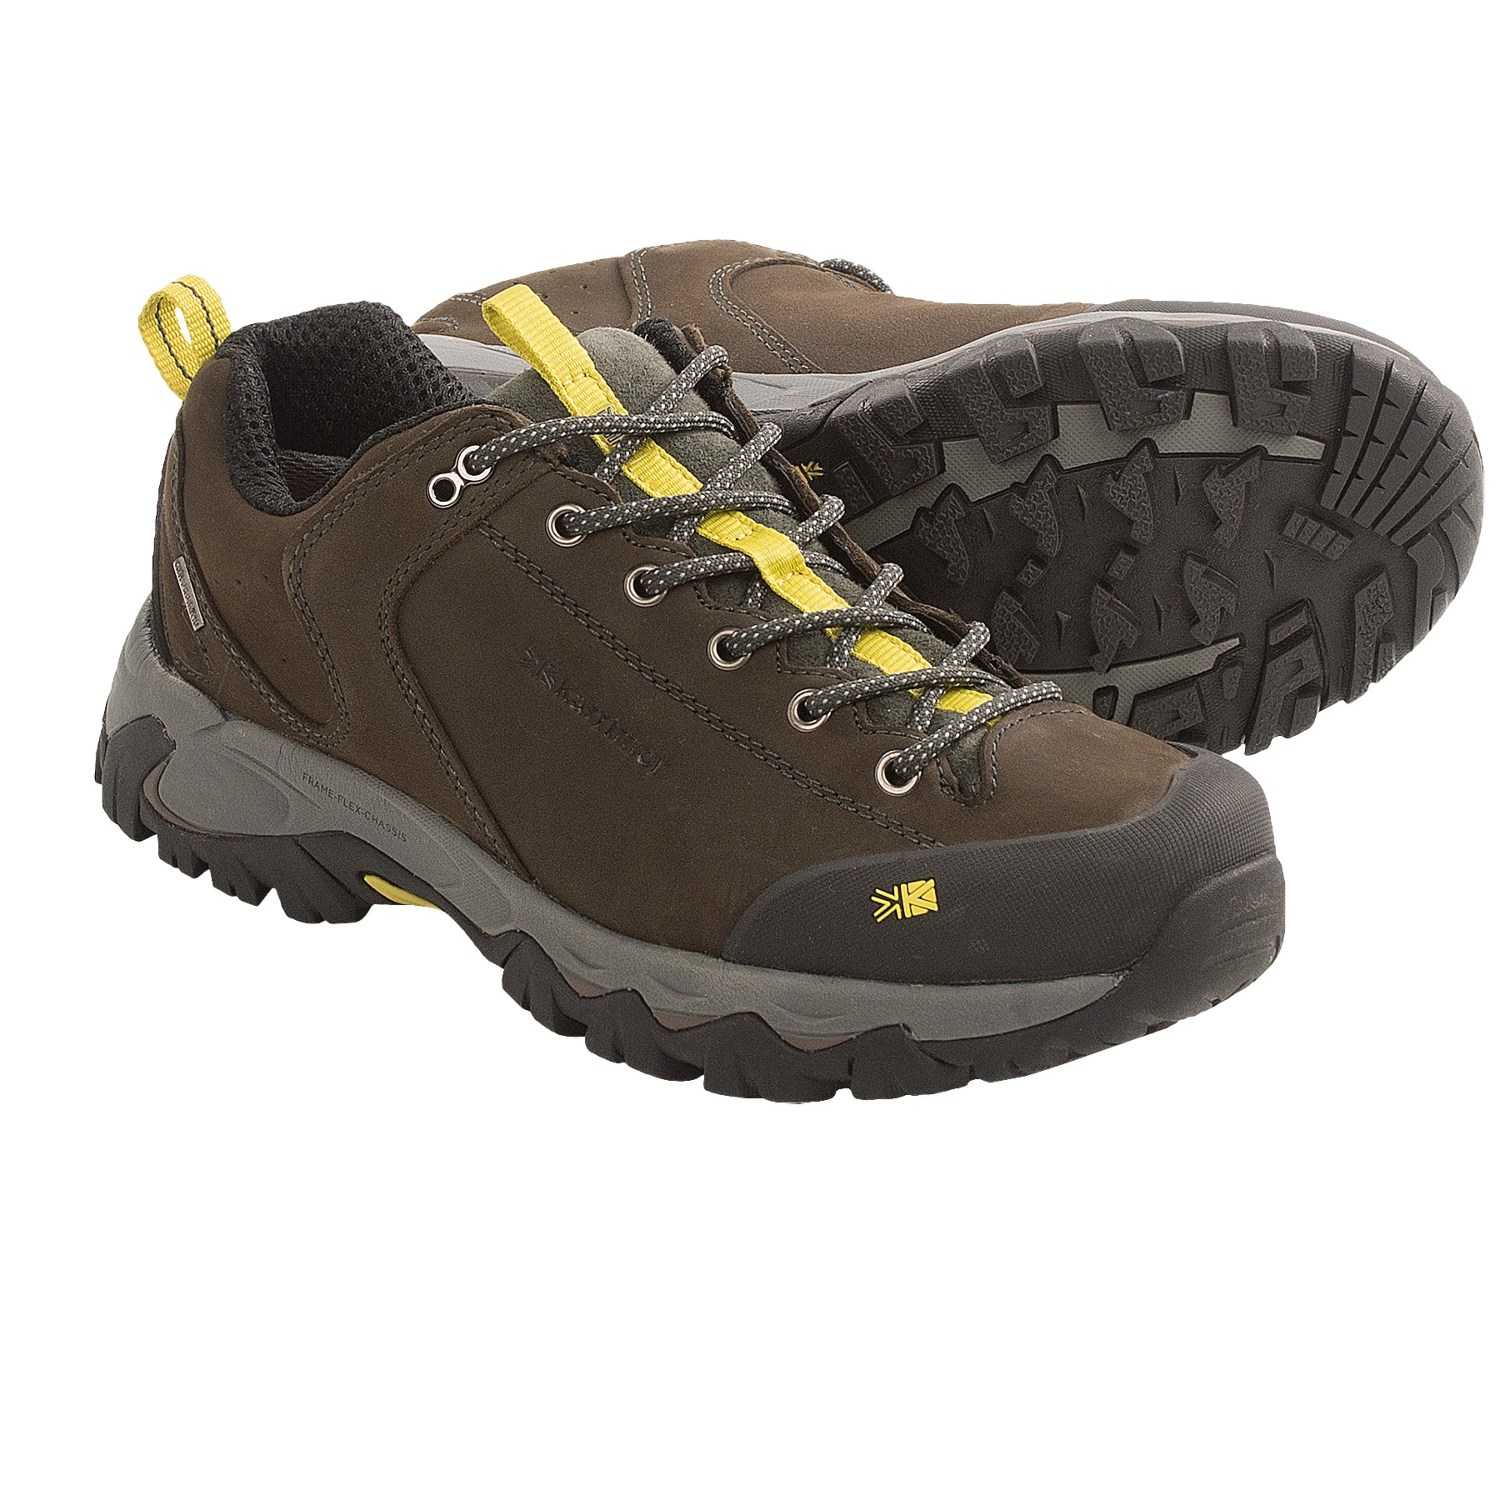 Karrimor Notus Weathertite Trail Shoes - Waterproof (For Men) in Black